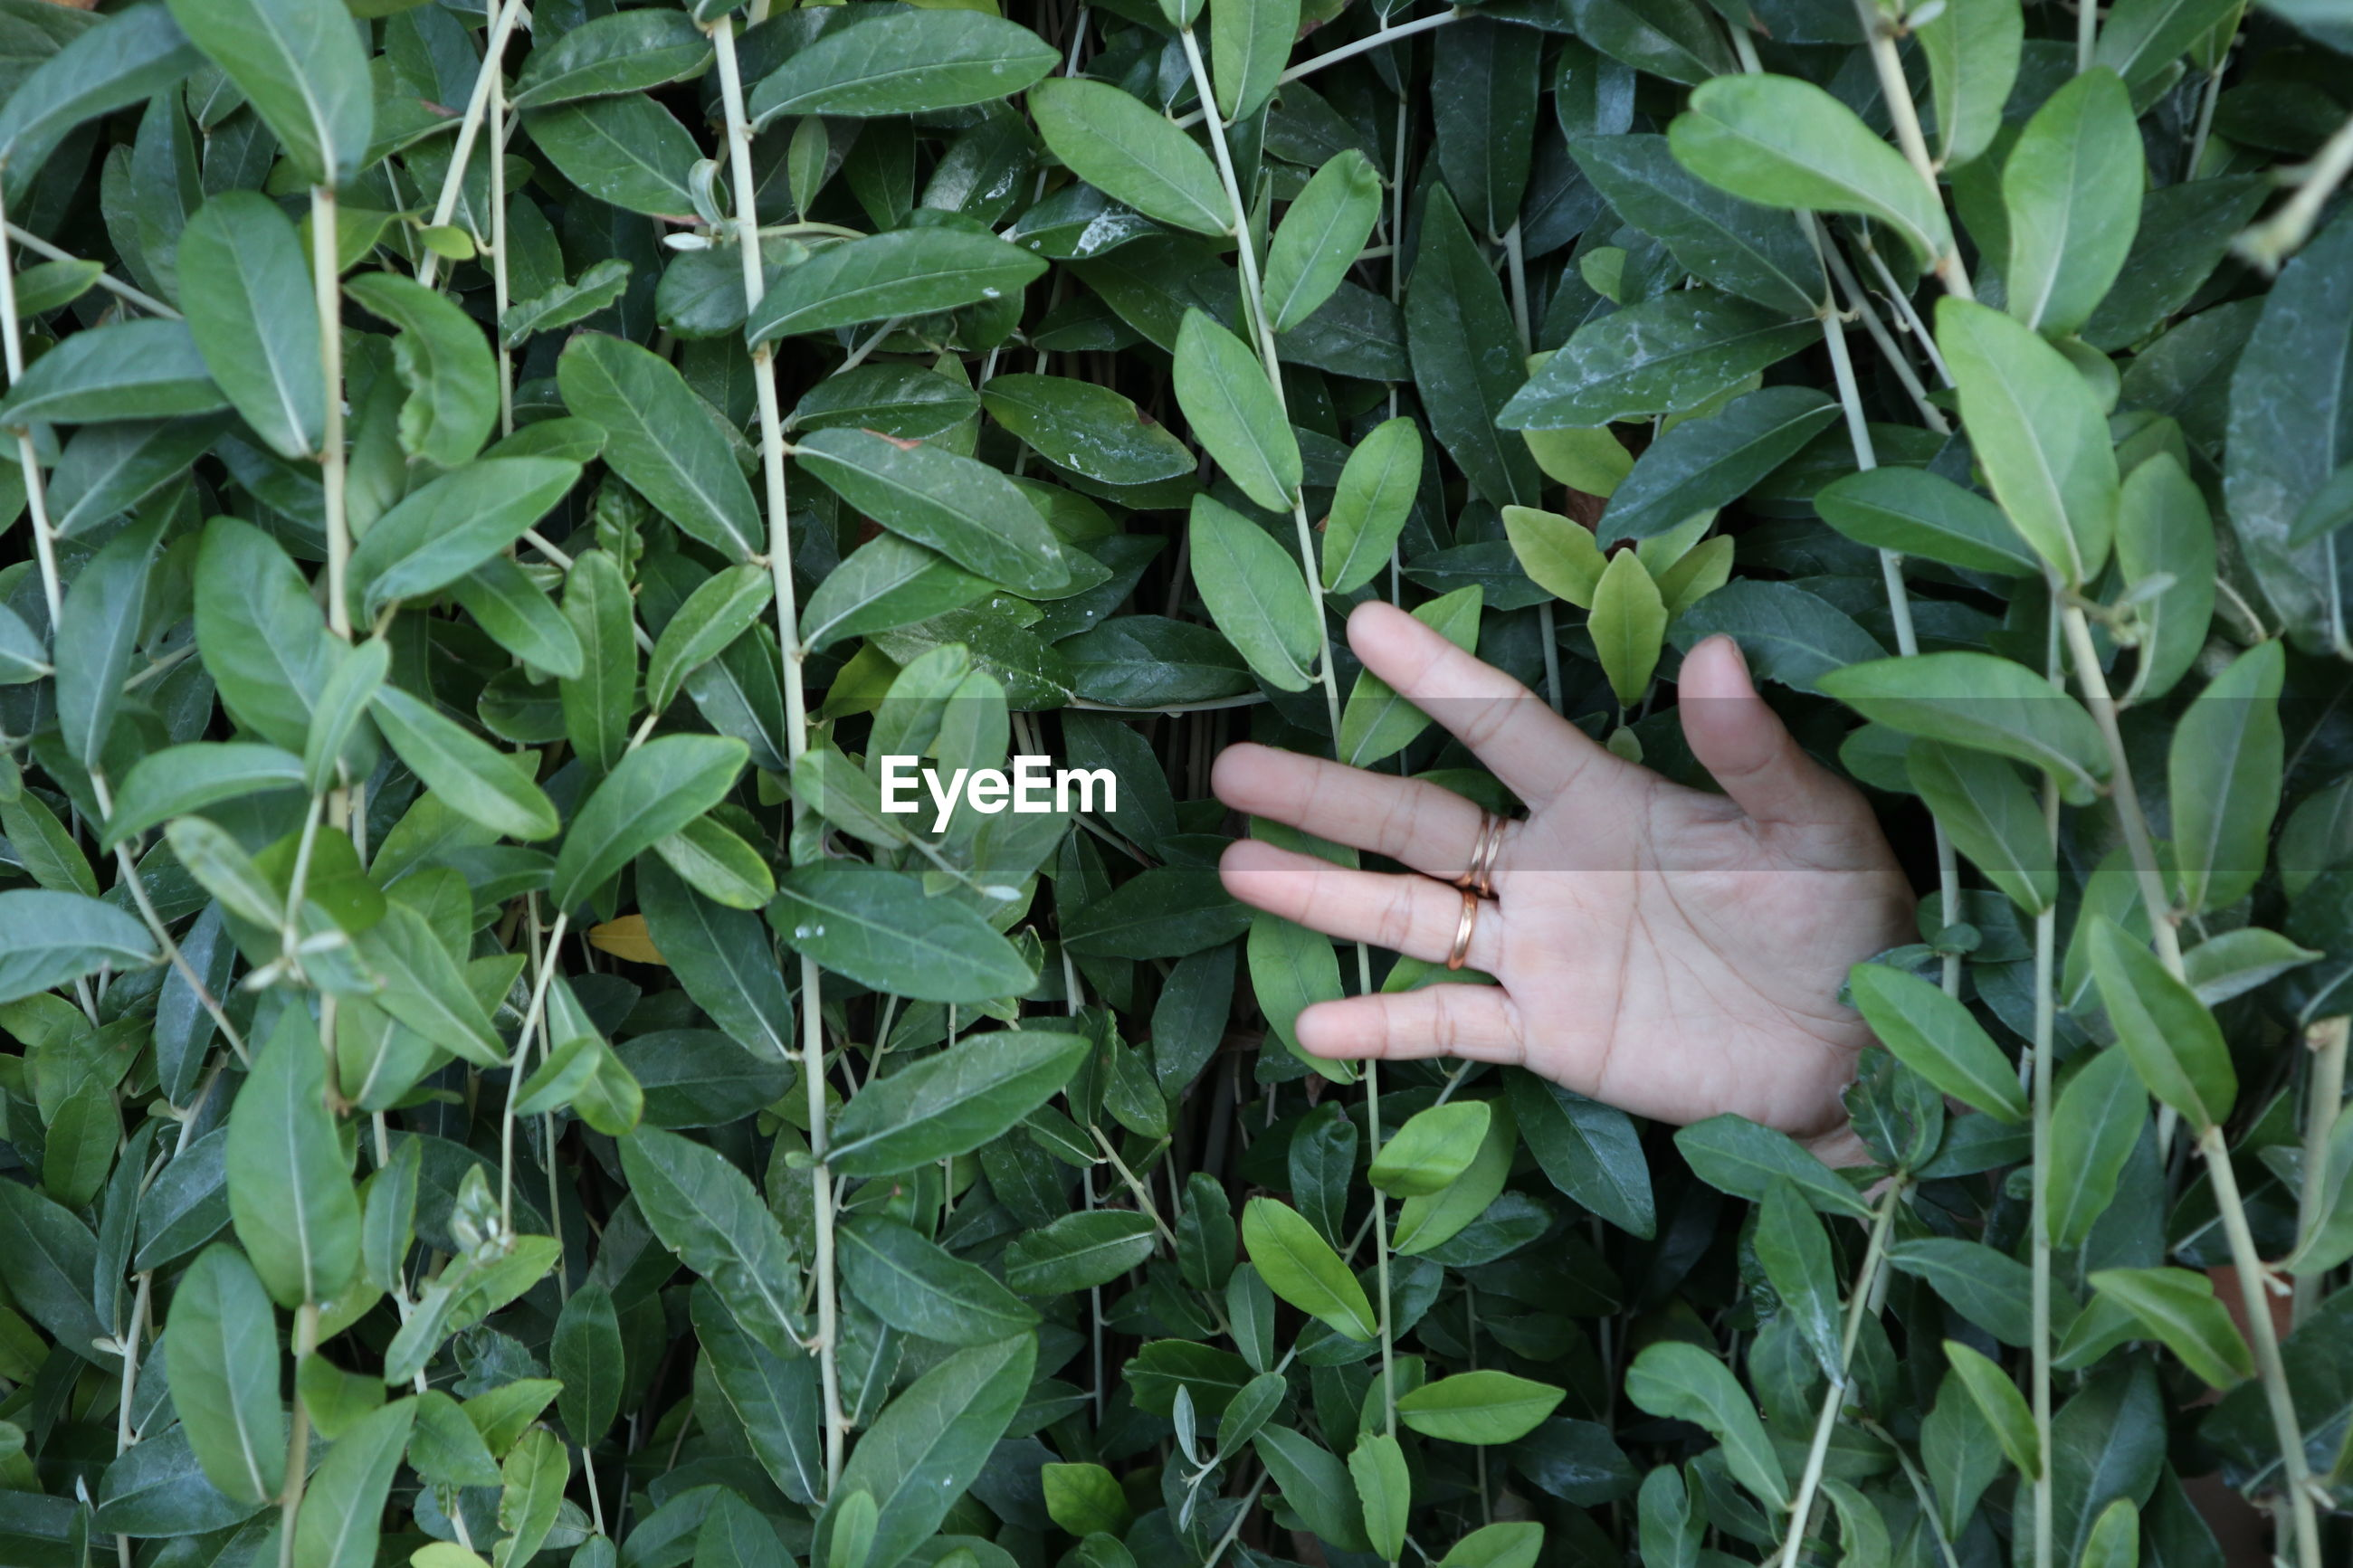 Close-up of human hand amidst green plants